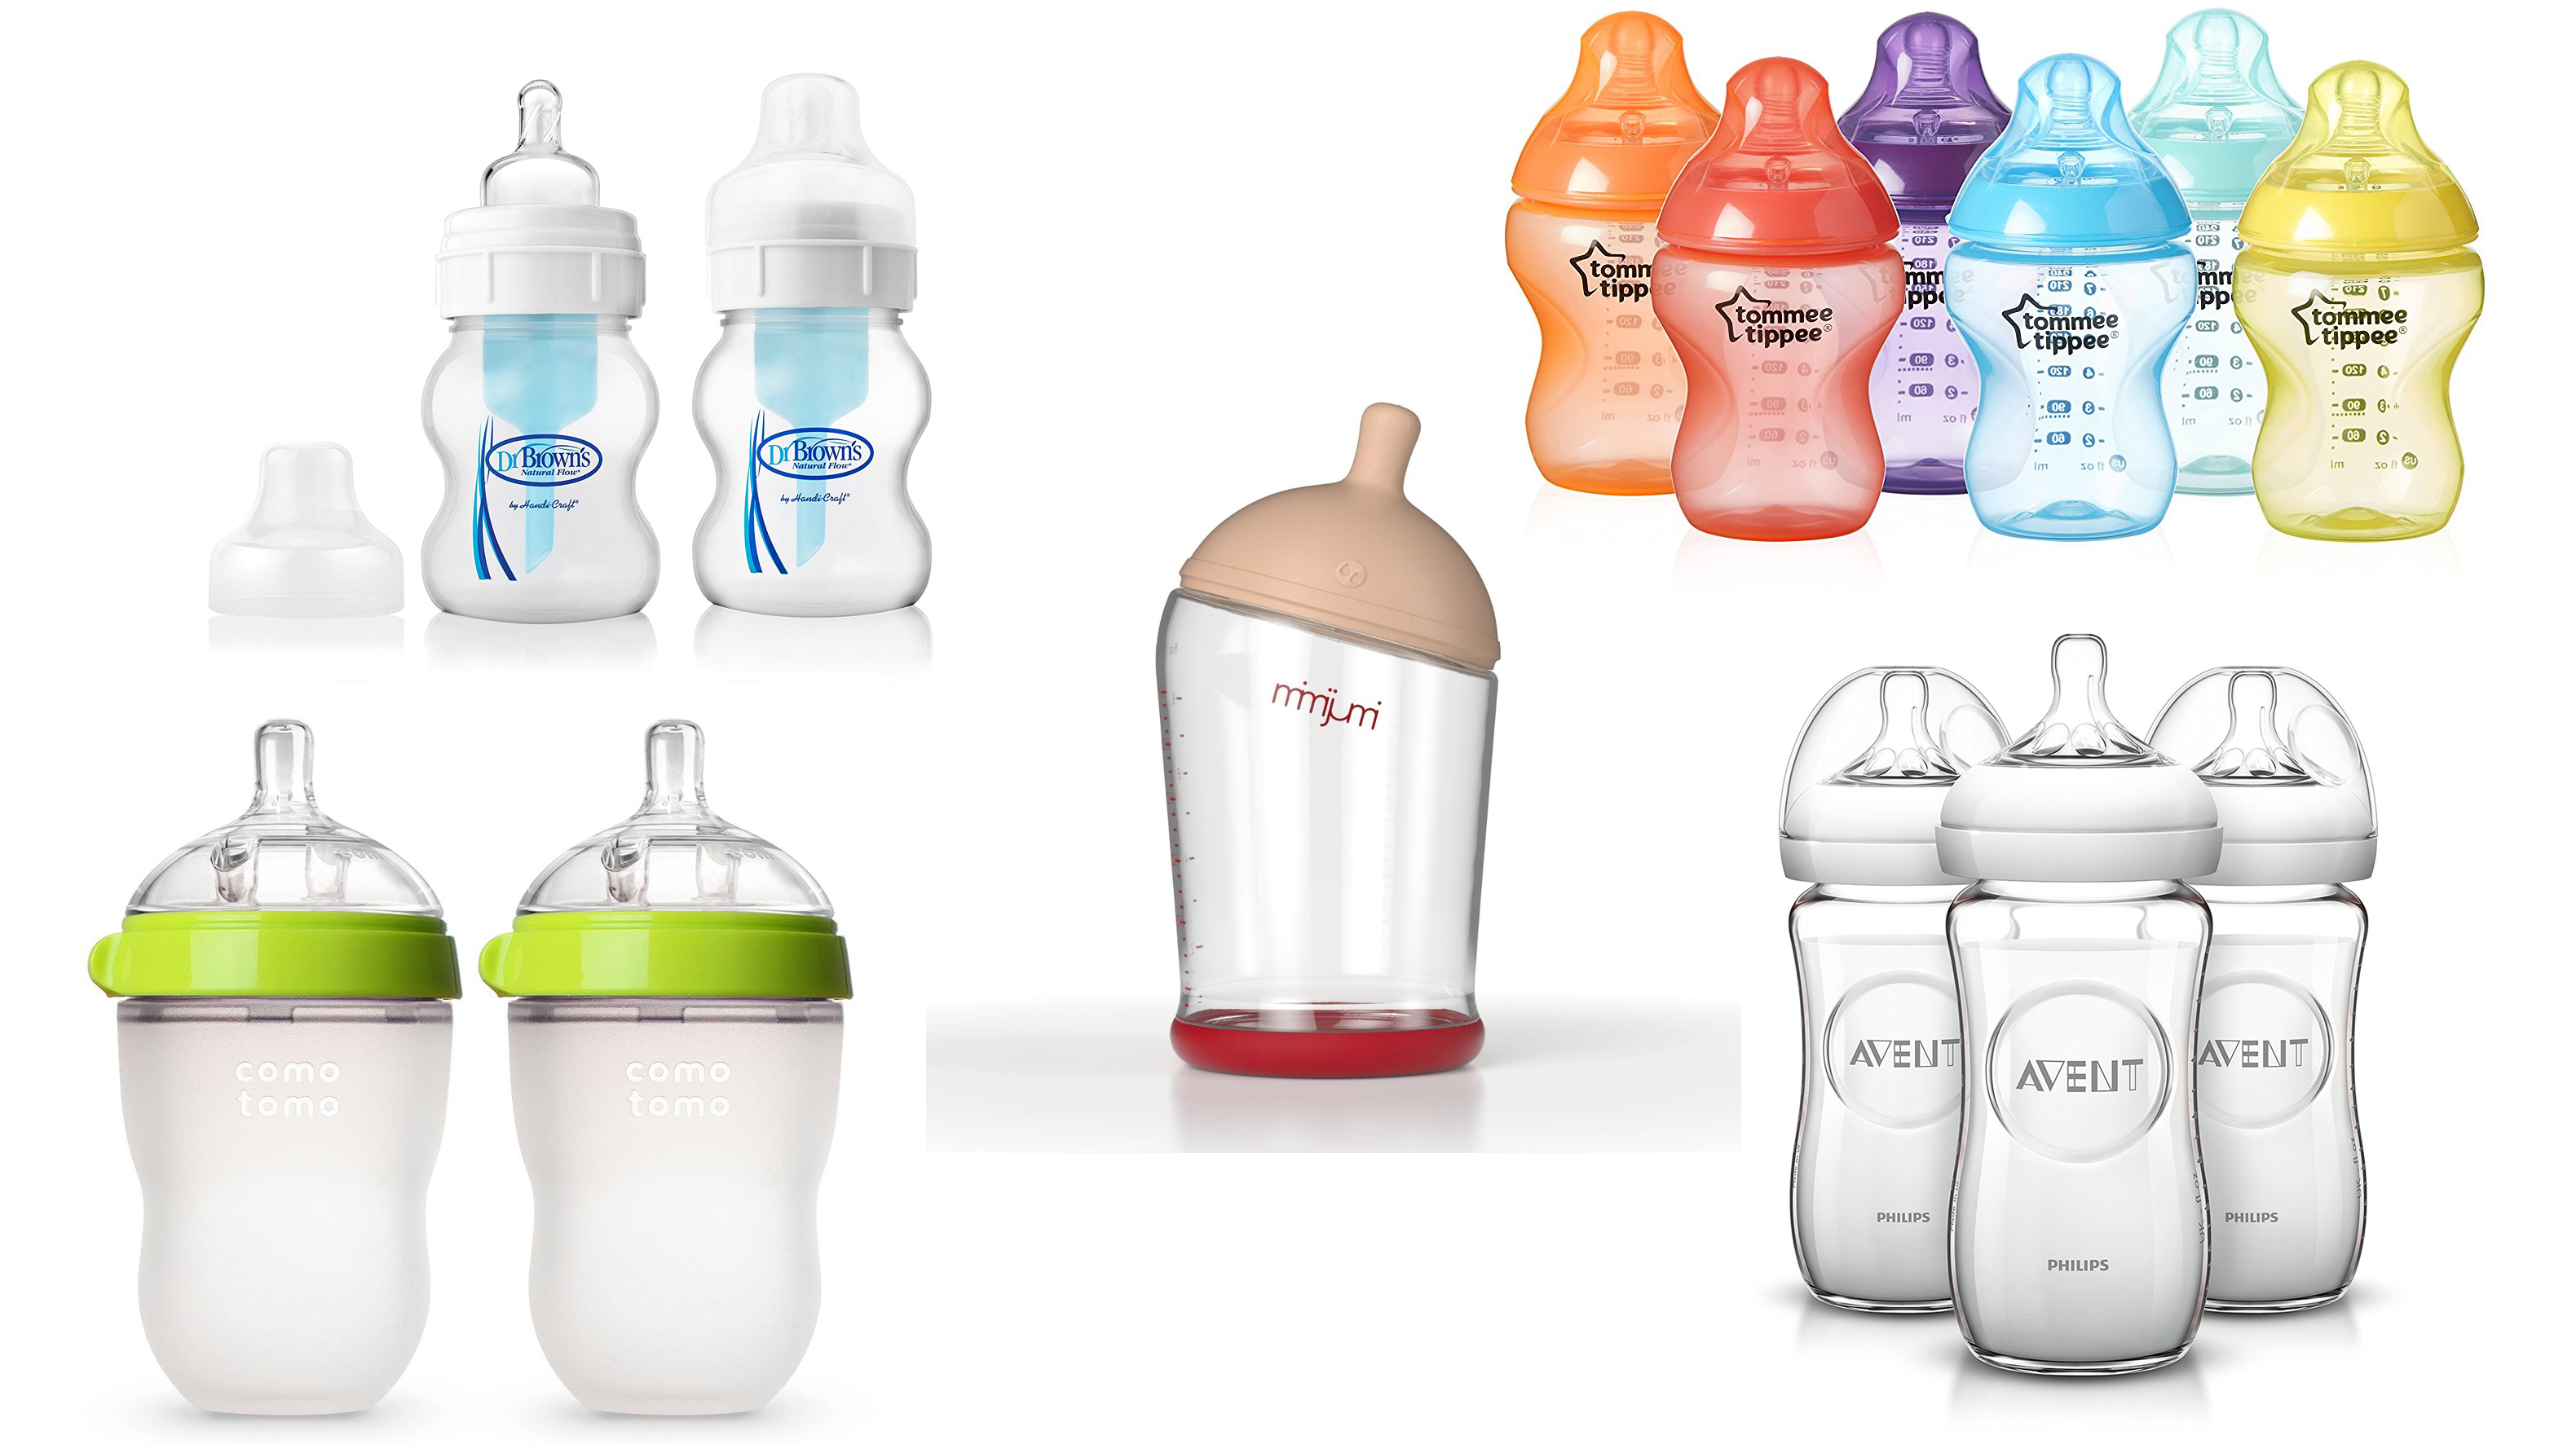 best bottles for breastfed babies, anti colic bottles, glass bottles, bottles for breastfed babies